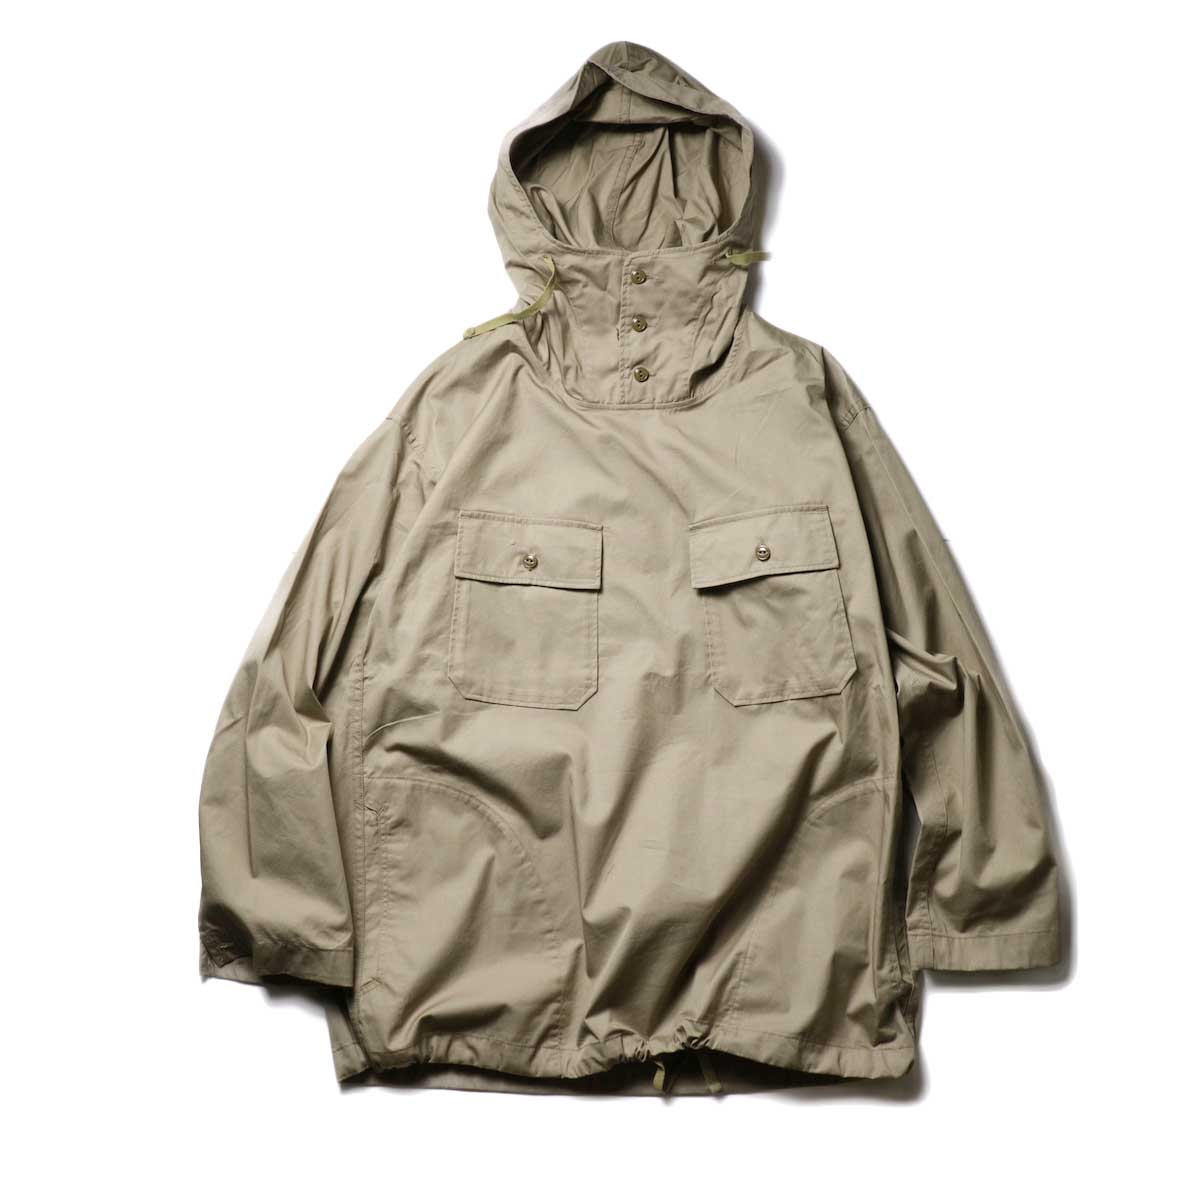 Engineered Garments / Cagoule Shirt -High Count Twill (Khaki)正面